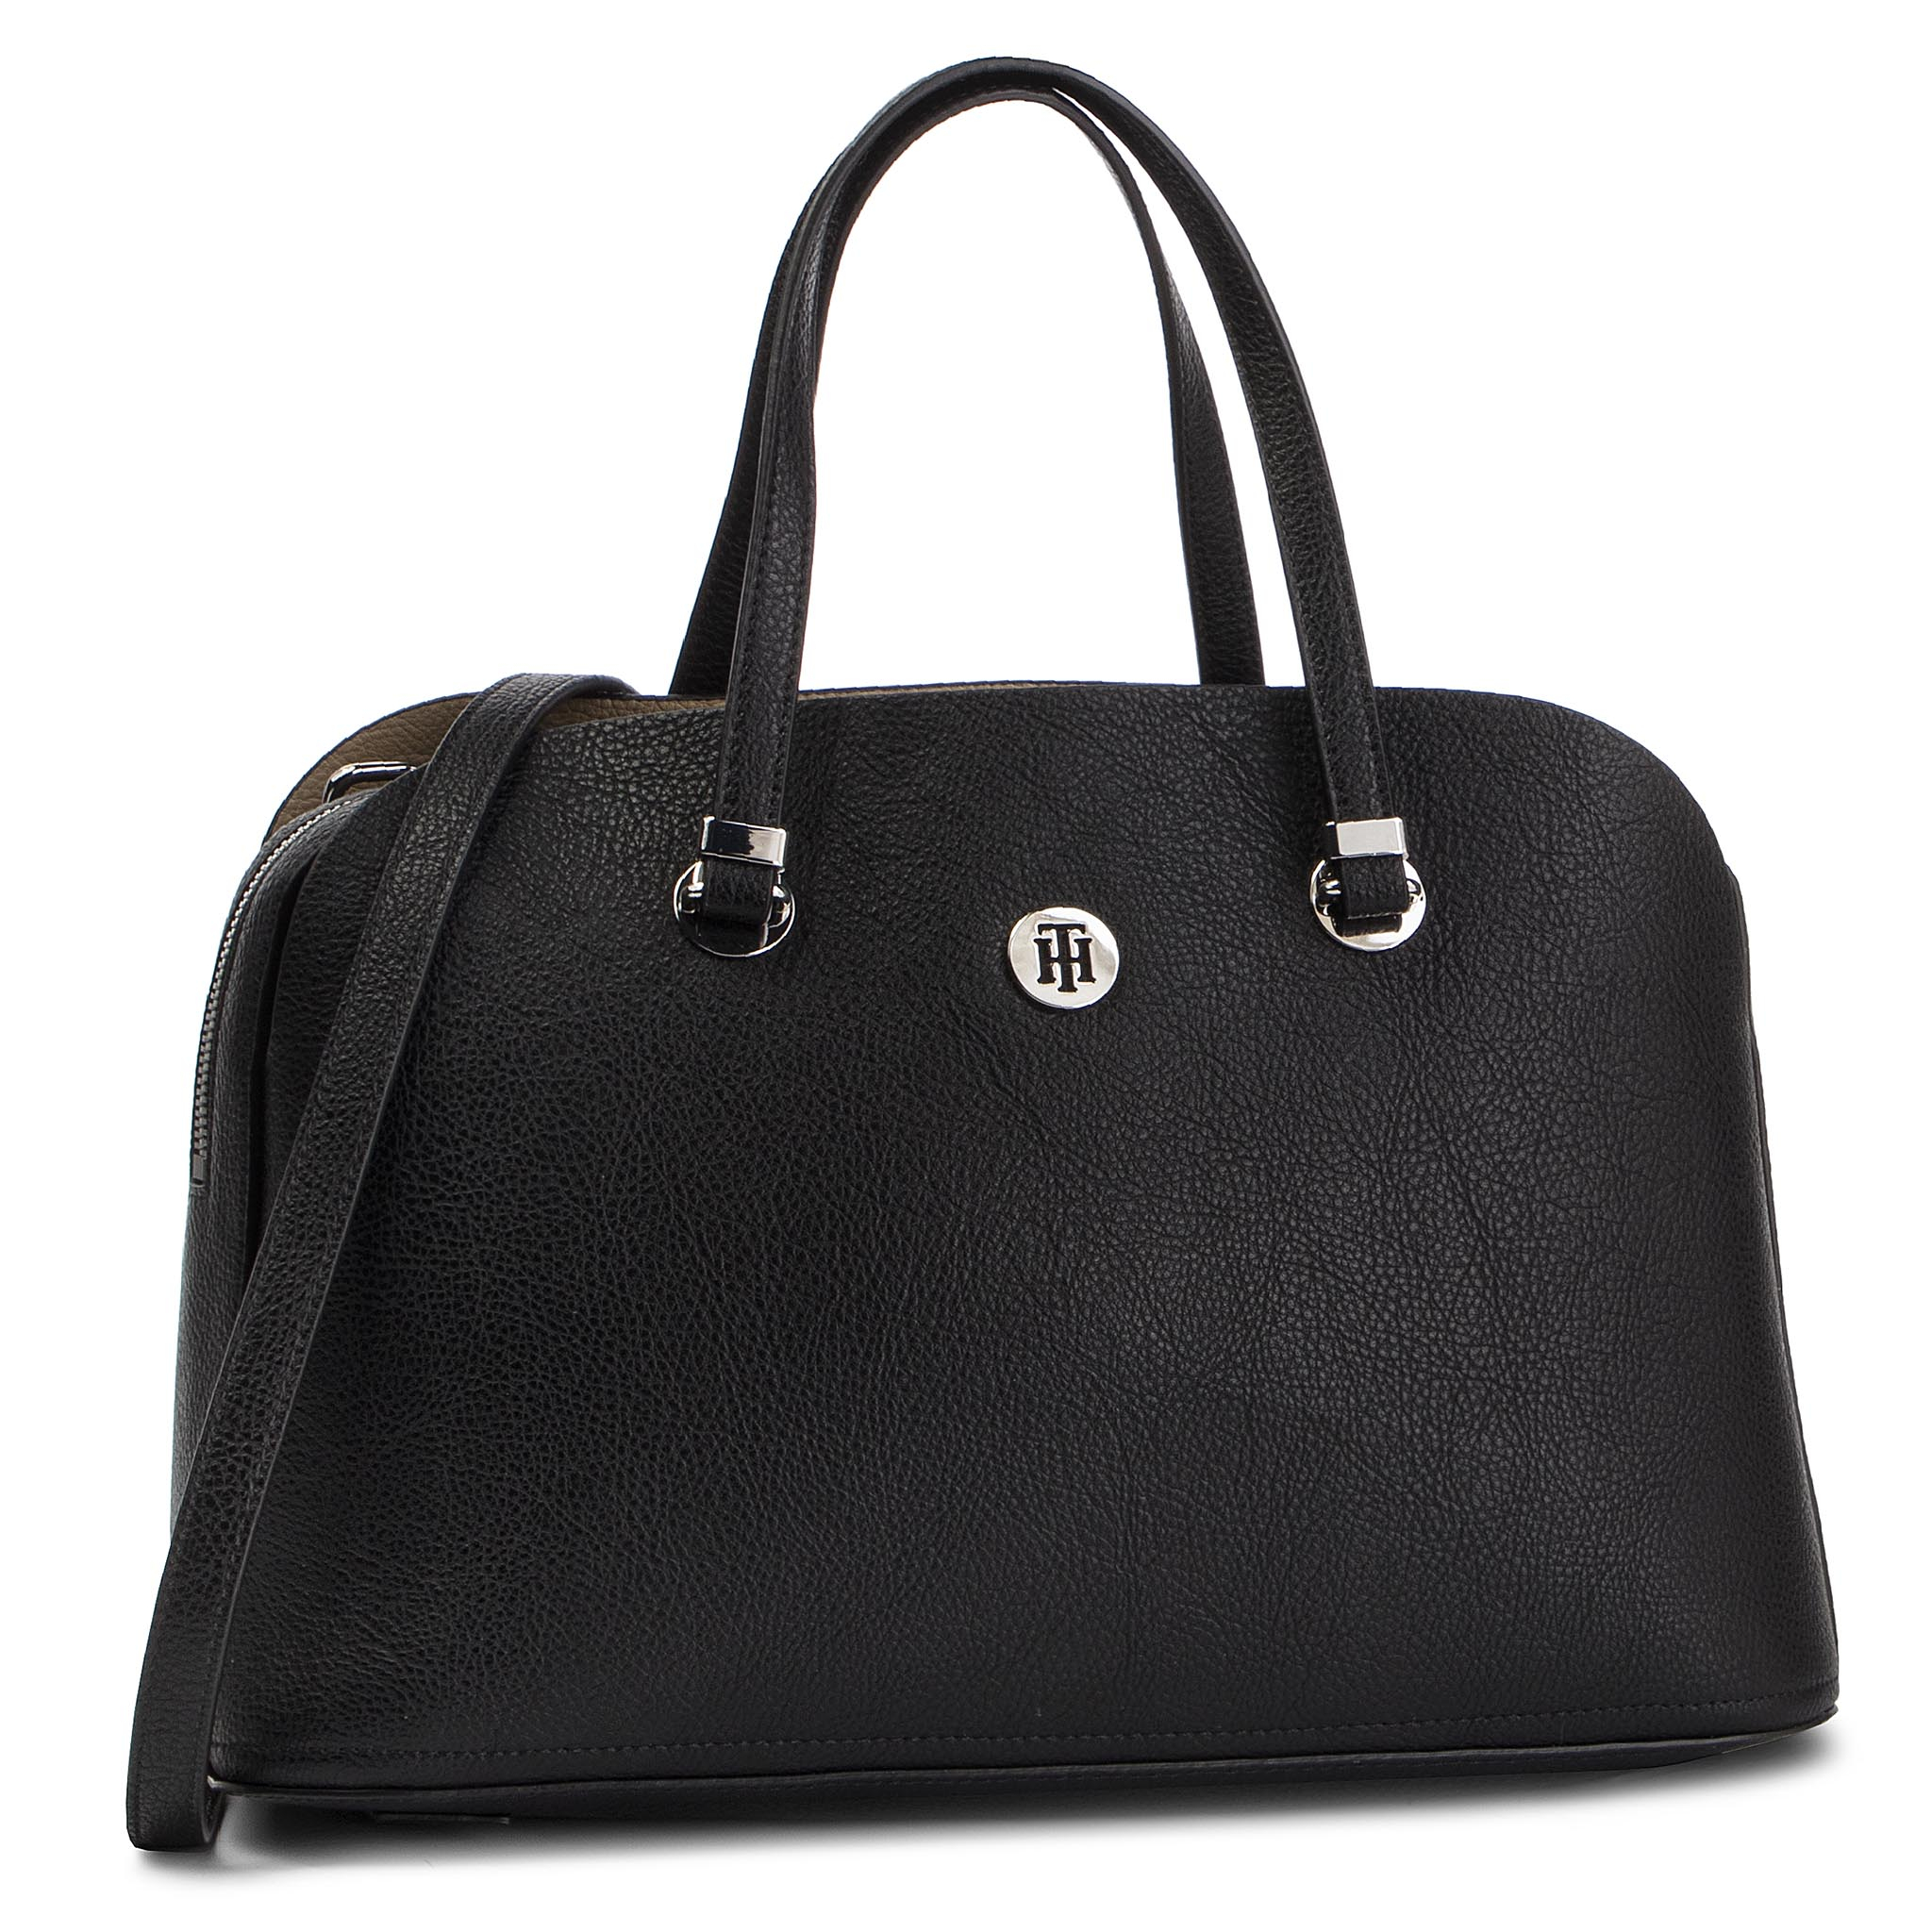 ... TOMMY HILFIGER - Th Core Satchel AW0AW06444 002. -11%. Táska ... 6d4b937799